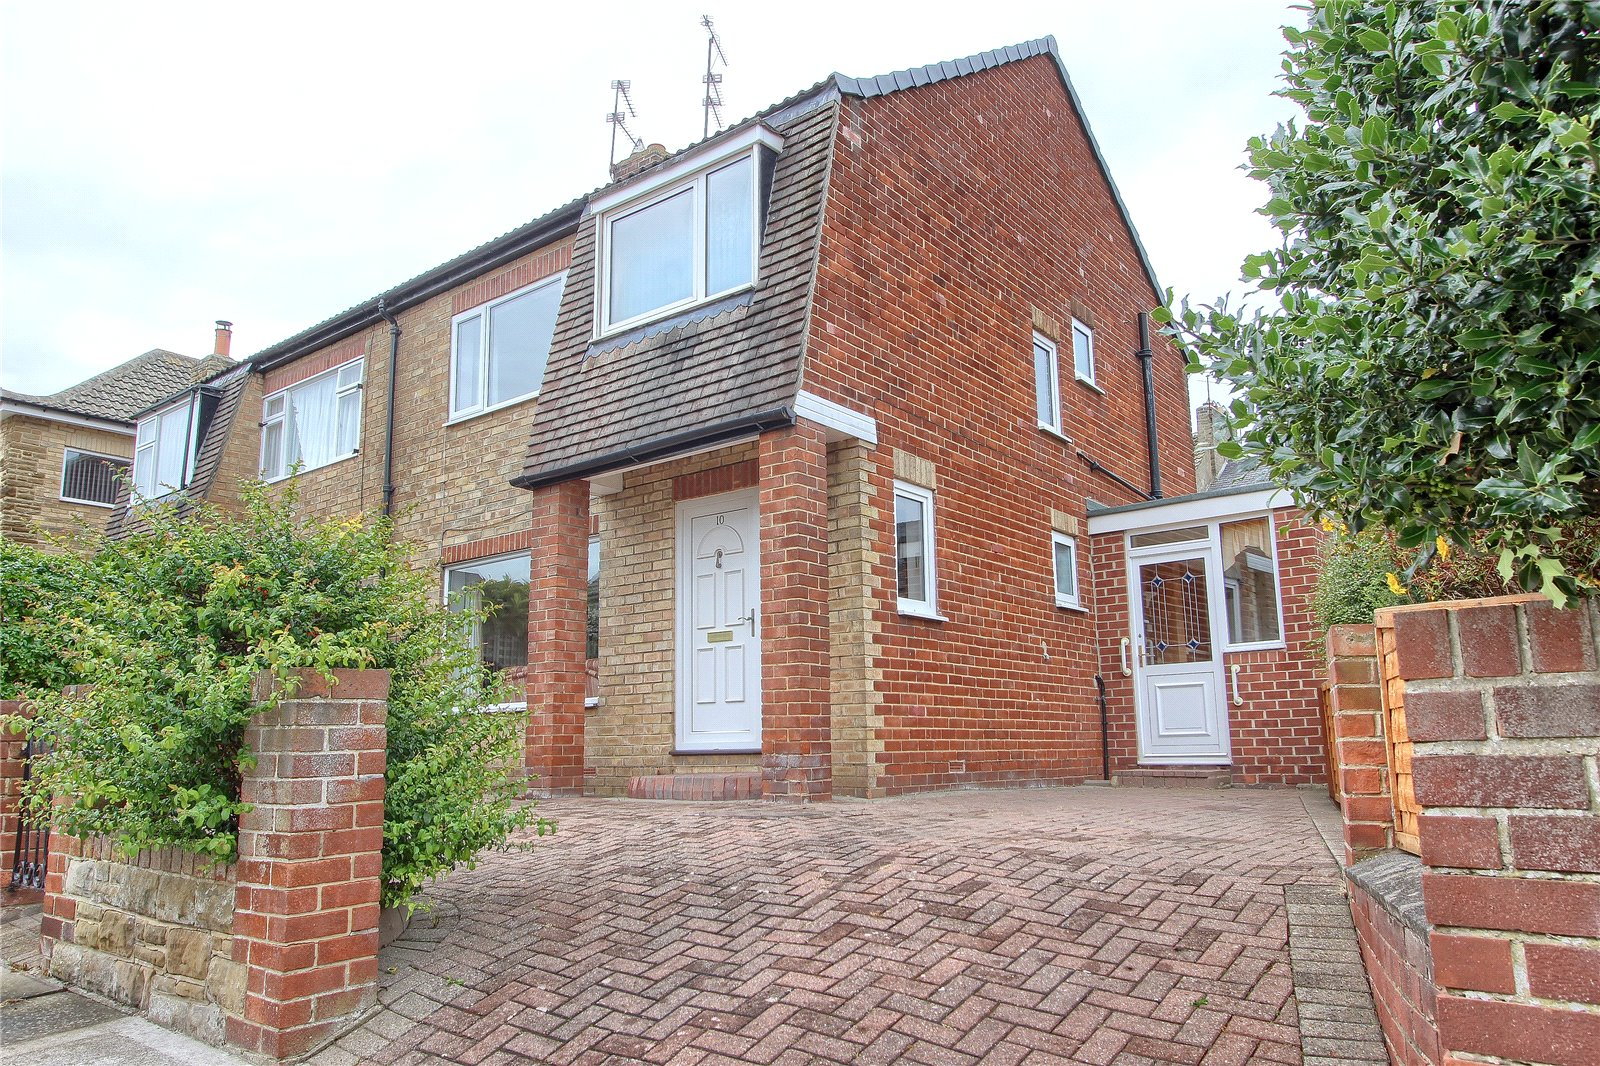 4 bed house for sale in Avon Close, Saltburn-by-the-Sea - Property Image 1